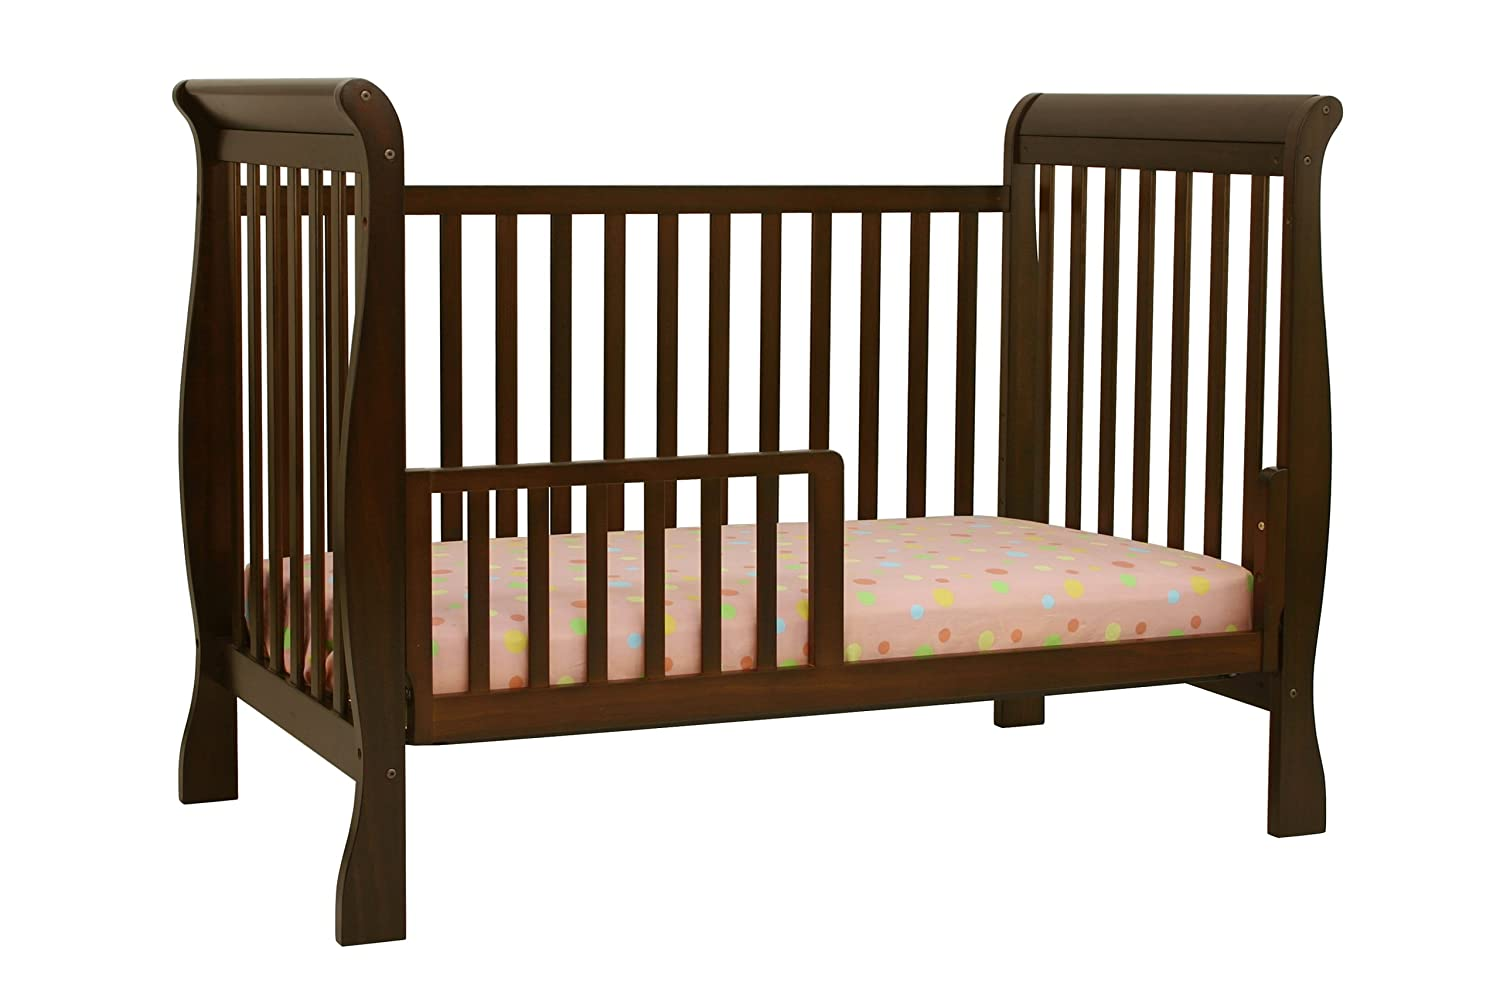 Toddler bed rails for convertible cribs - Amazon Com Davinci Toddler Bed Coversion Kit Espresso Nursery Bed Rails Baby